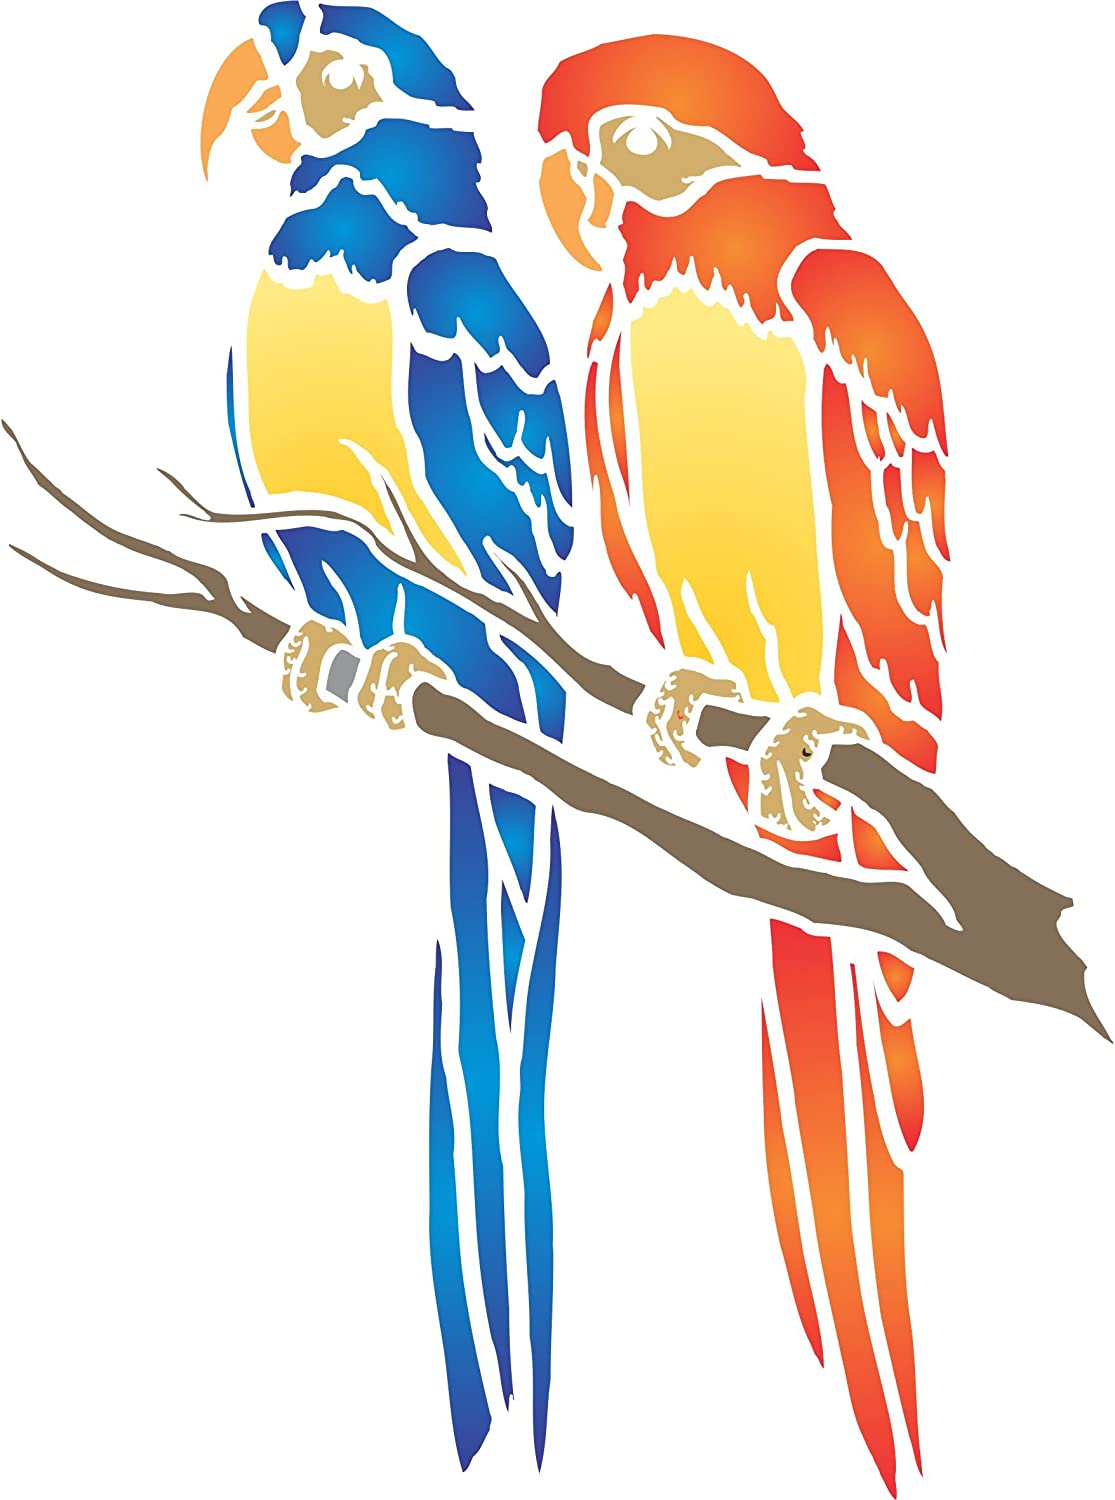 Parrot Stencil, 10.5 x 14 inch (M) - Animal Wildlife Macaw Bird Stencils for Painting Template